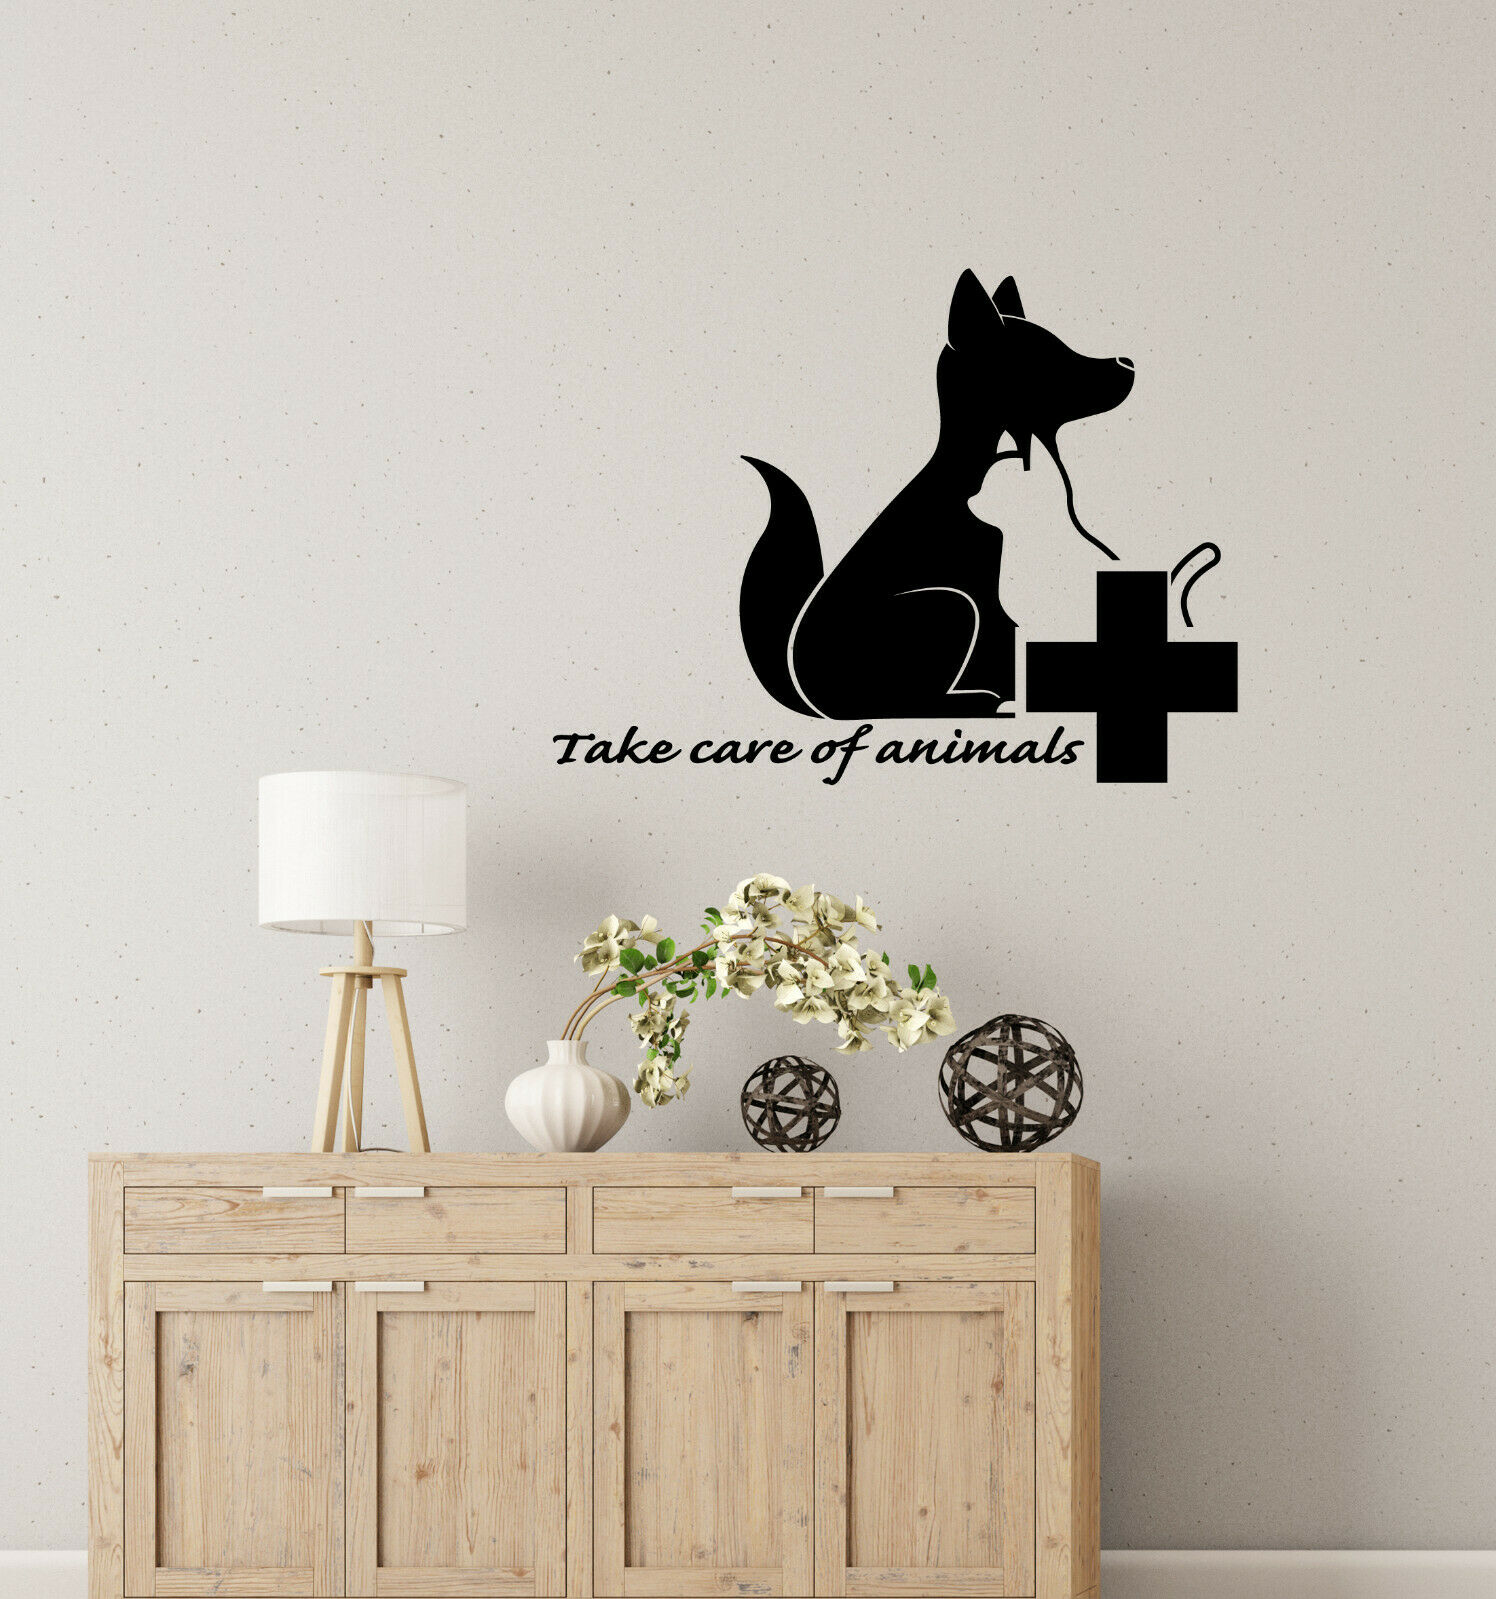 Vinyl Wall Decal Take Care Of Animals Quote Veterinary Clinic Stickers (4044ig)